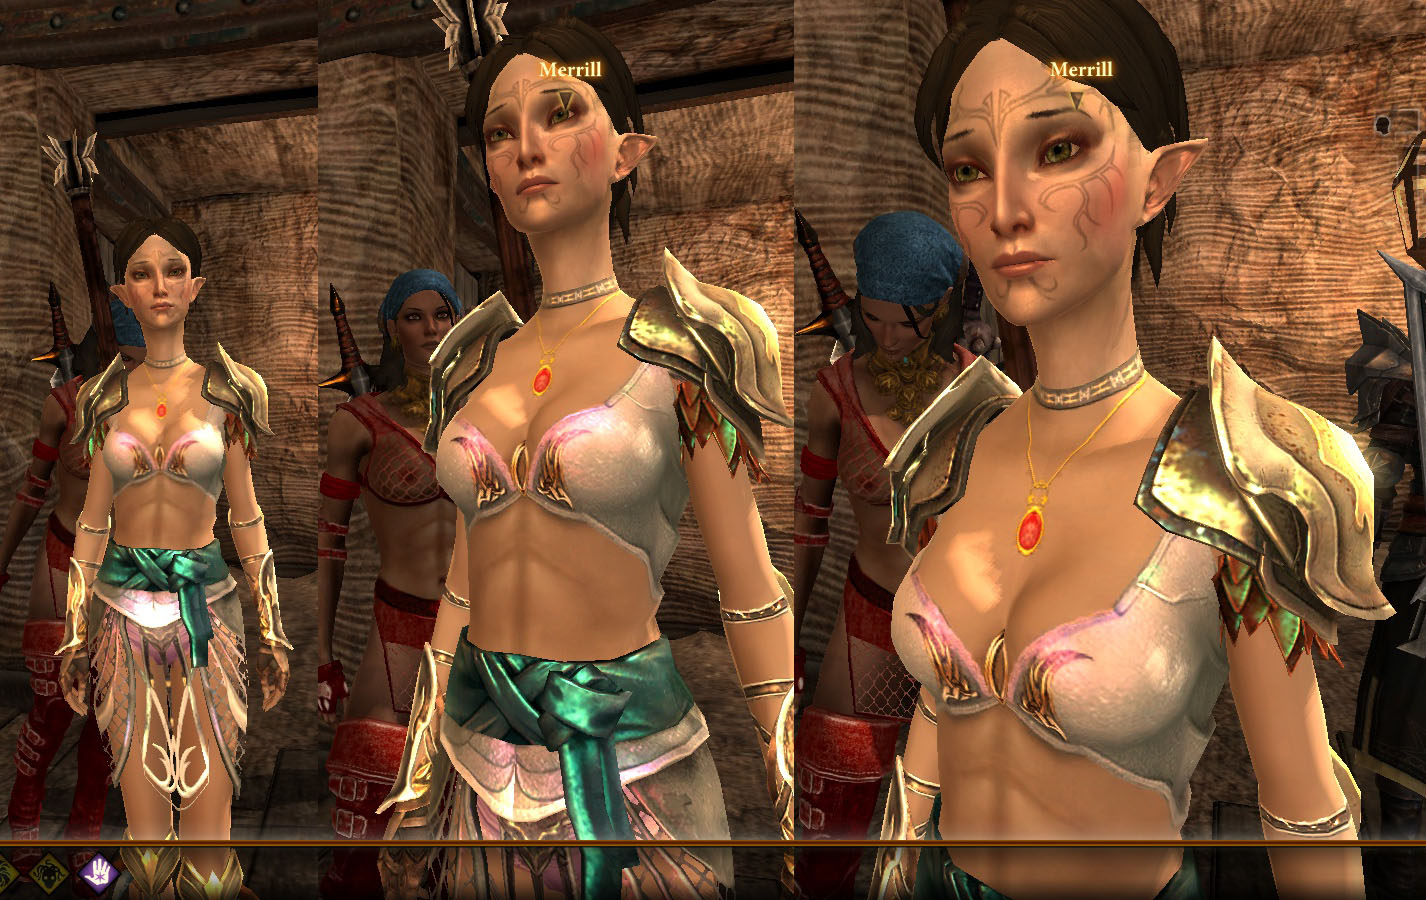 Dragon age 2 sexy meril naked pornos sluts